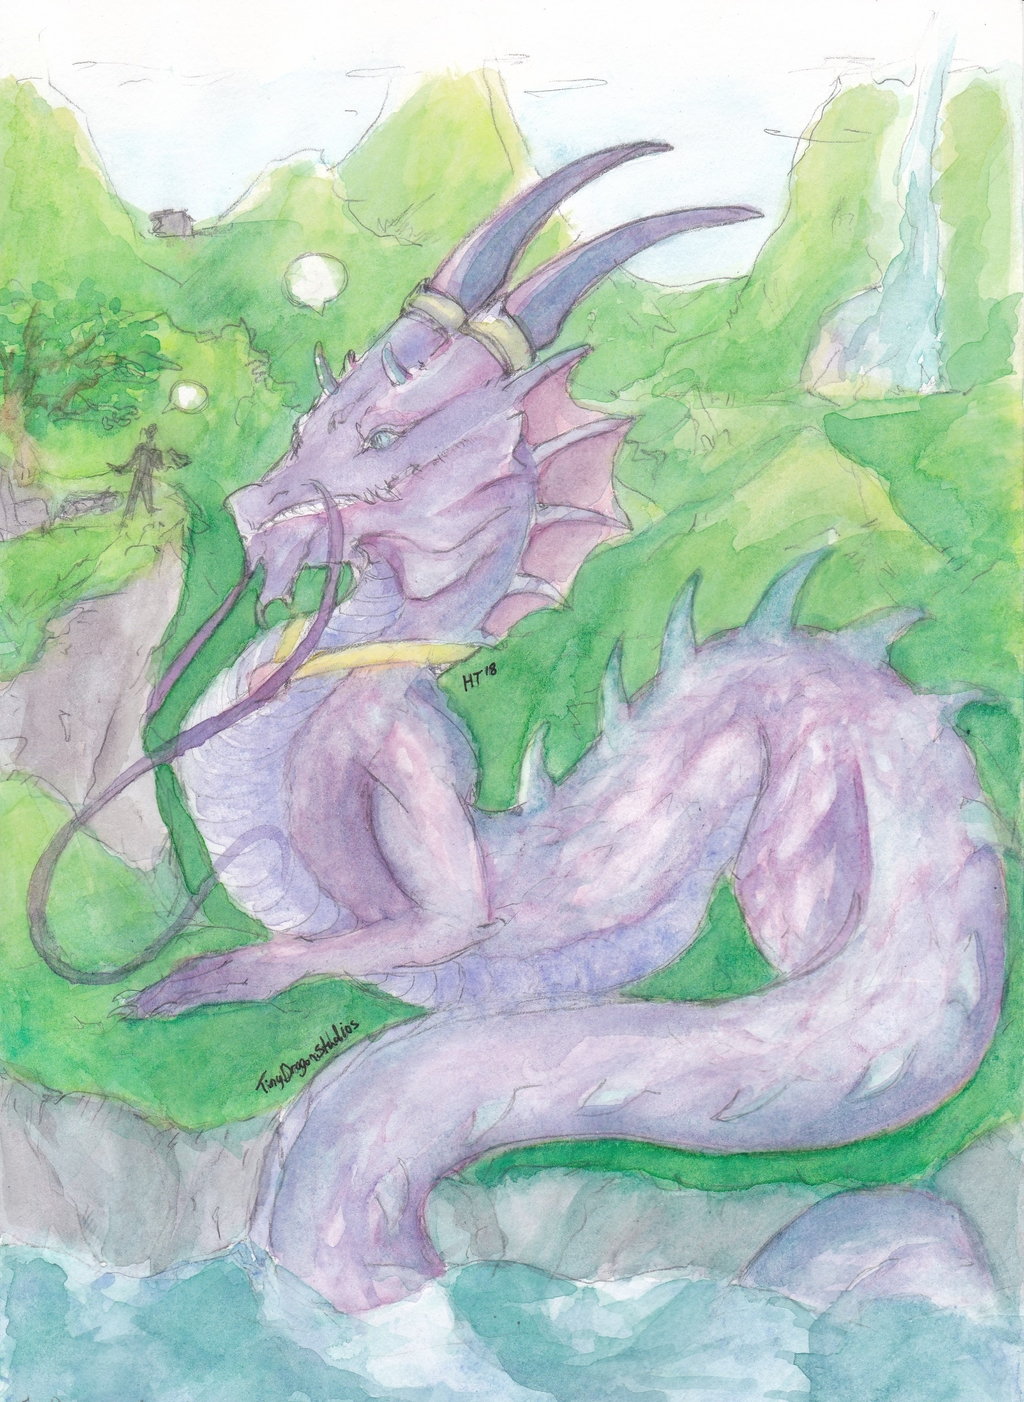 Most recent image: The Dragon and the Storyteller